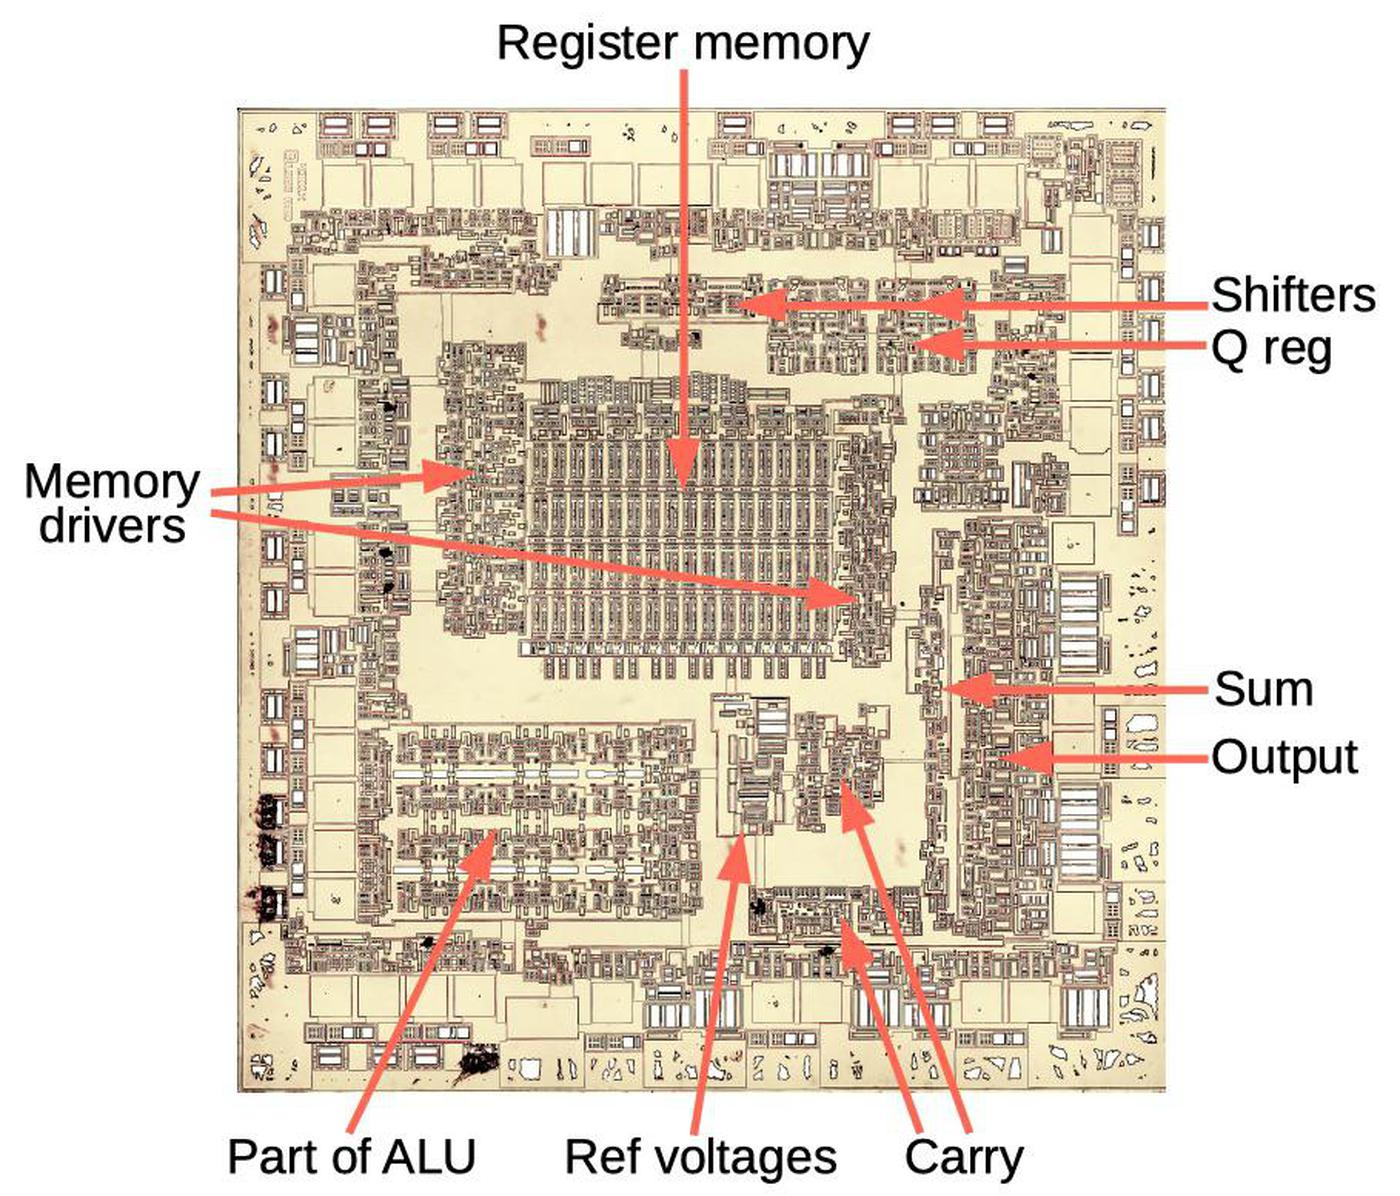 Die photo of the Am2901 chip with main functional blocks labeled. The circuitry around the outside largely consists of buffers to convert between the external TTL signals and the internal ECL signals.